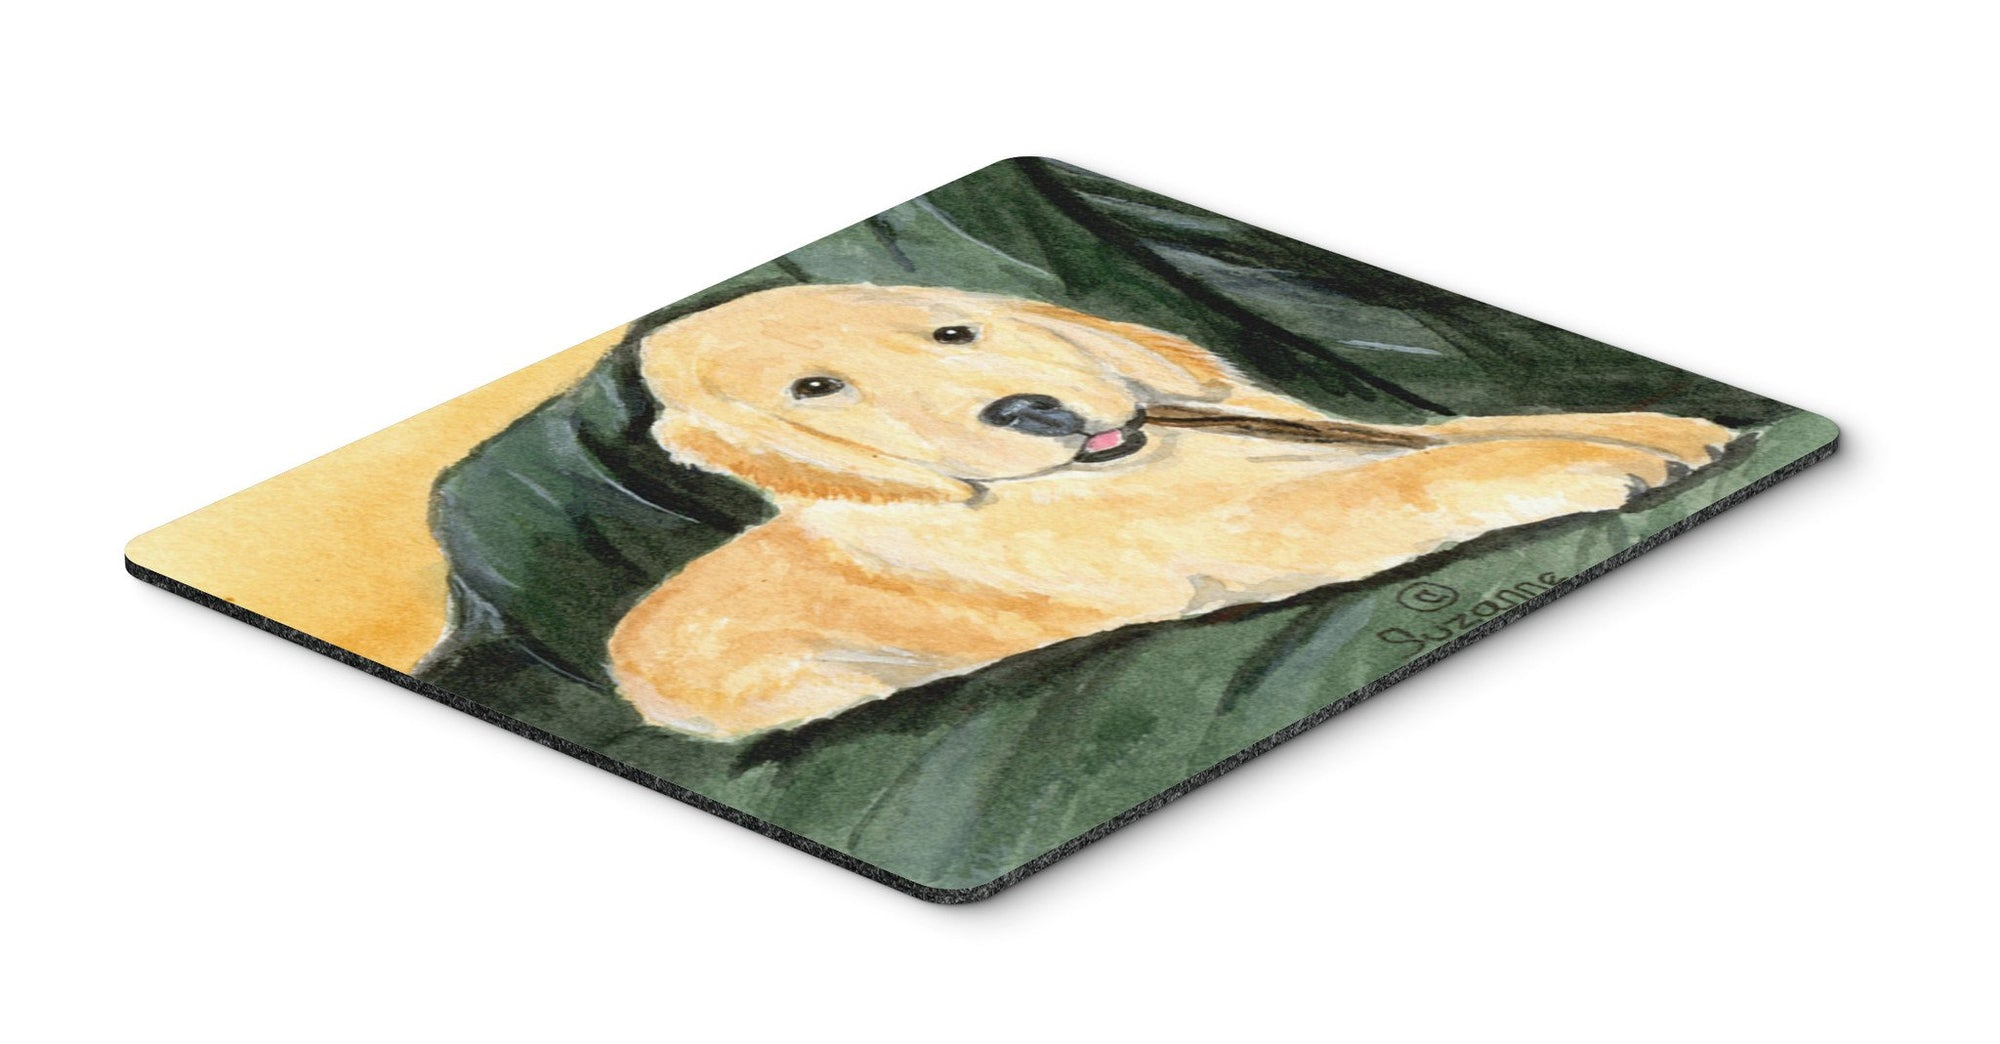 Golden Retriever Mouse pad, hot pad, or trivet by Caroline's Treasures